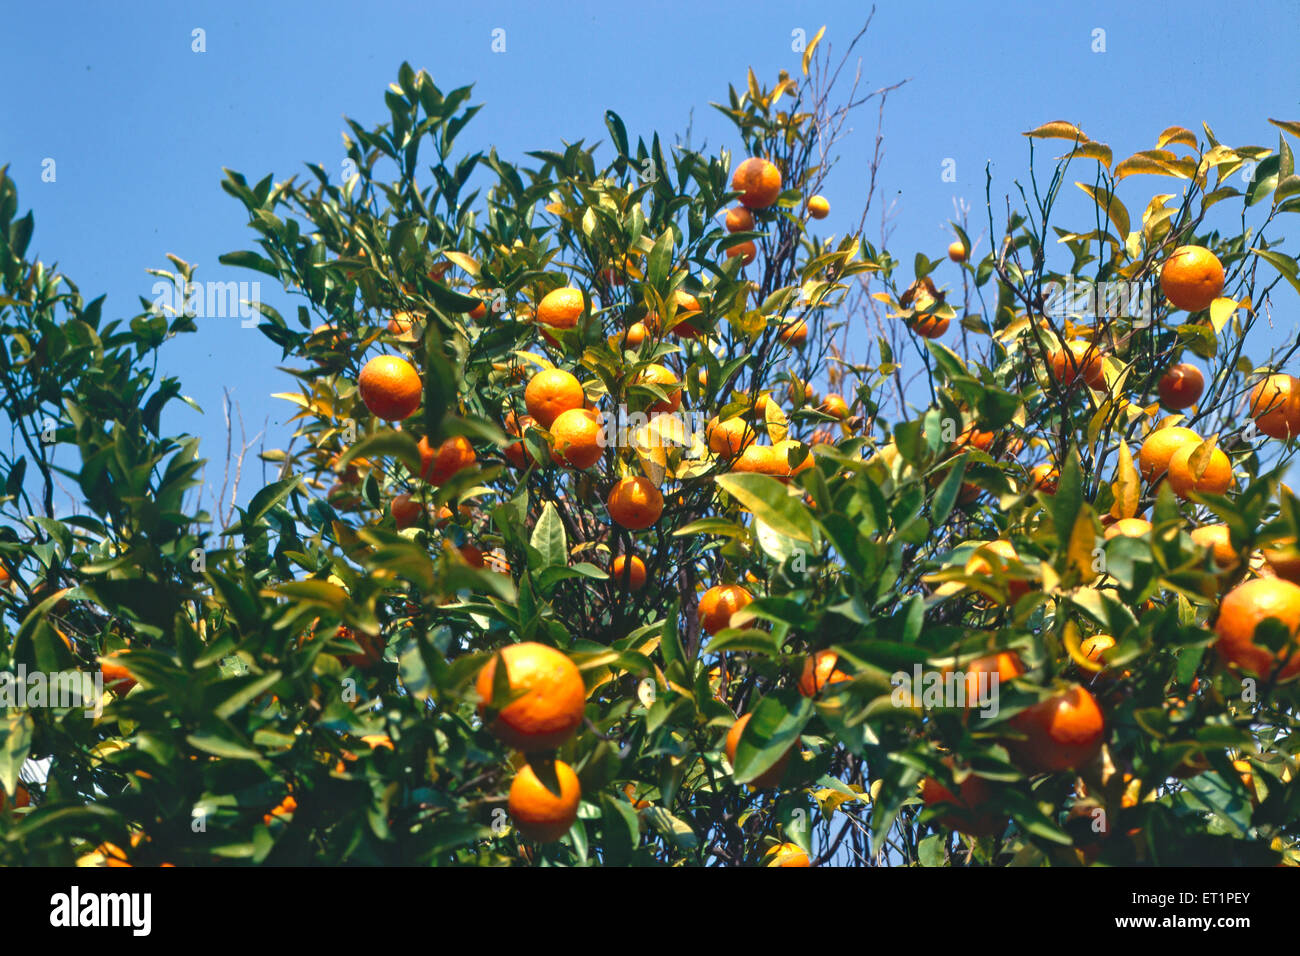 Cultivation of oranges in palampur ; Himachal Pradesh ; India - Stock Image